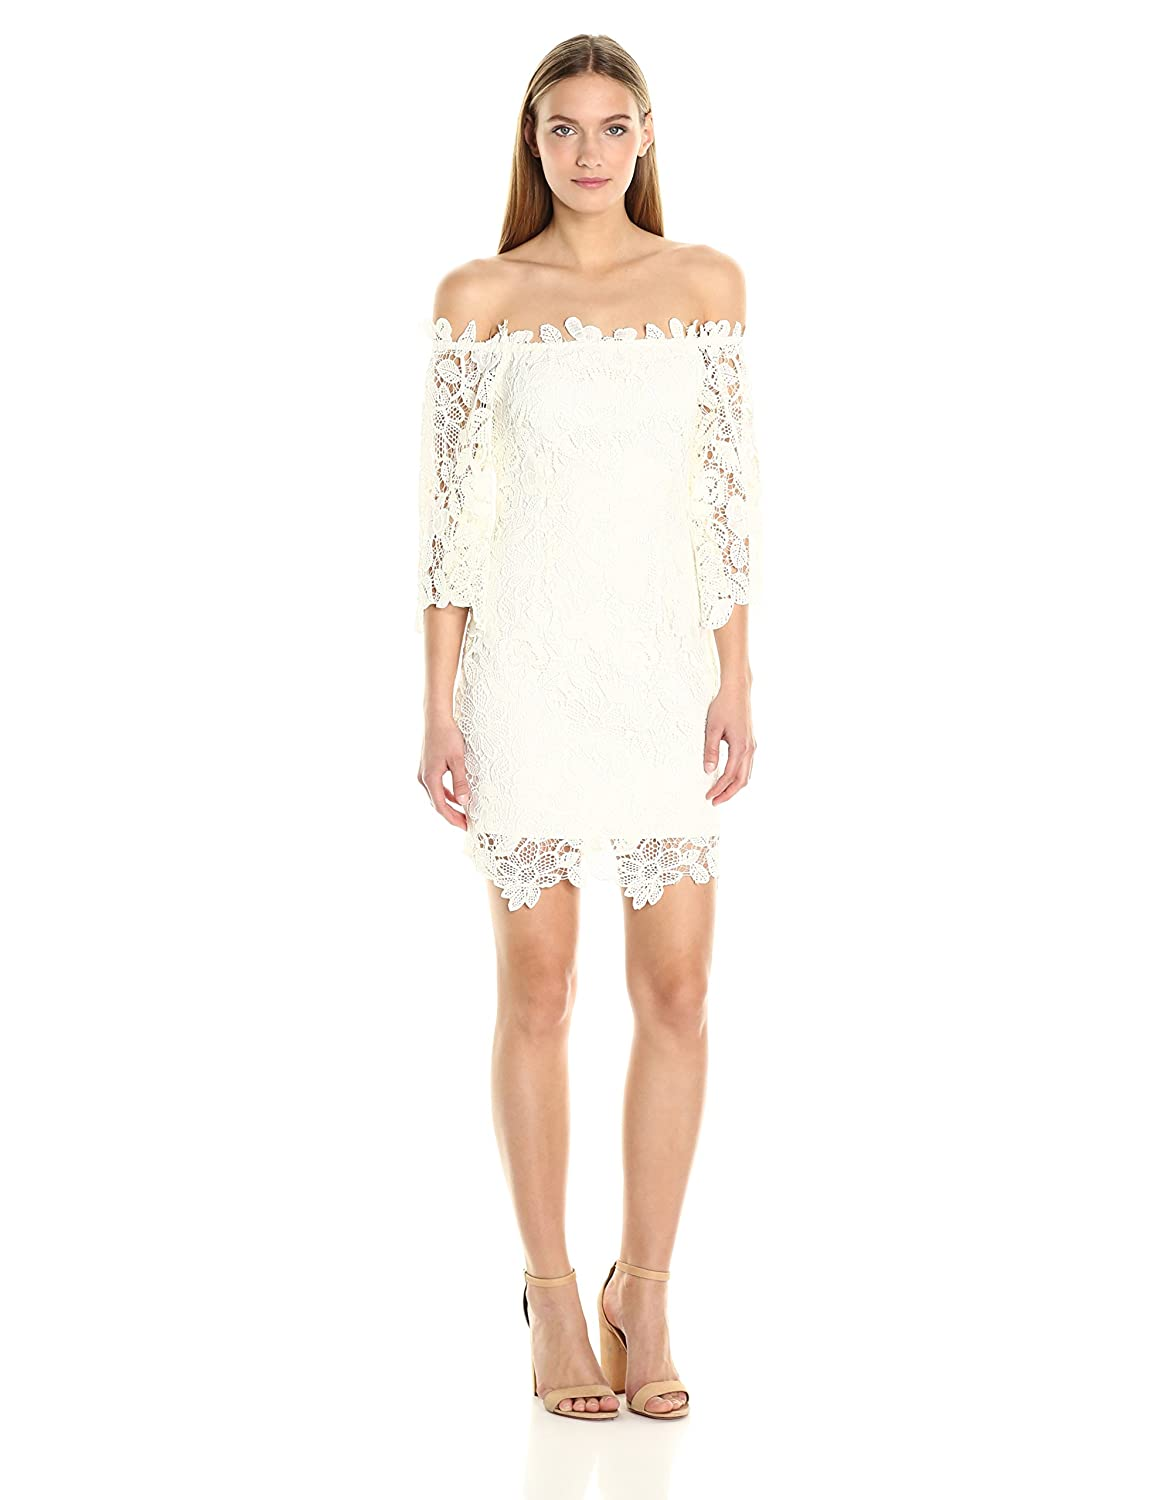 b8e0d34ab30 ASTR Women's Madeline Lace Off the Shoulder Dress at Amazon Women's  Clothing store: